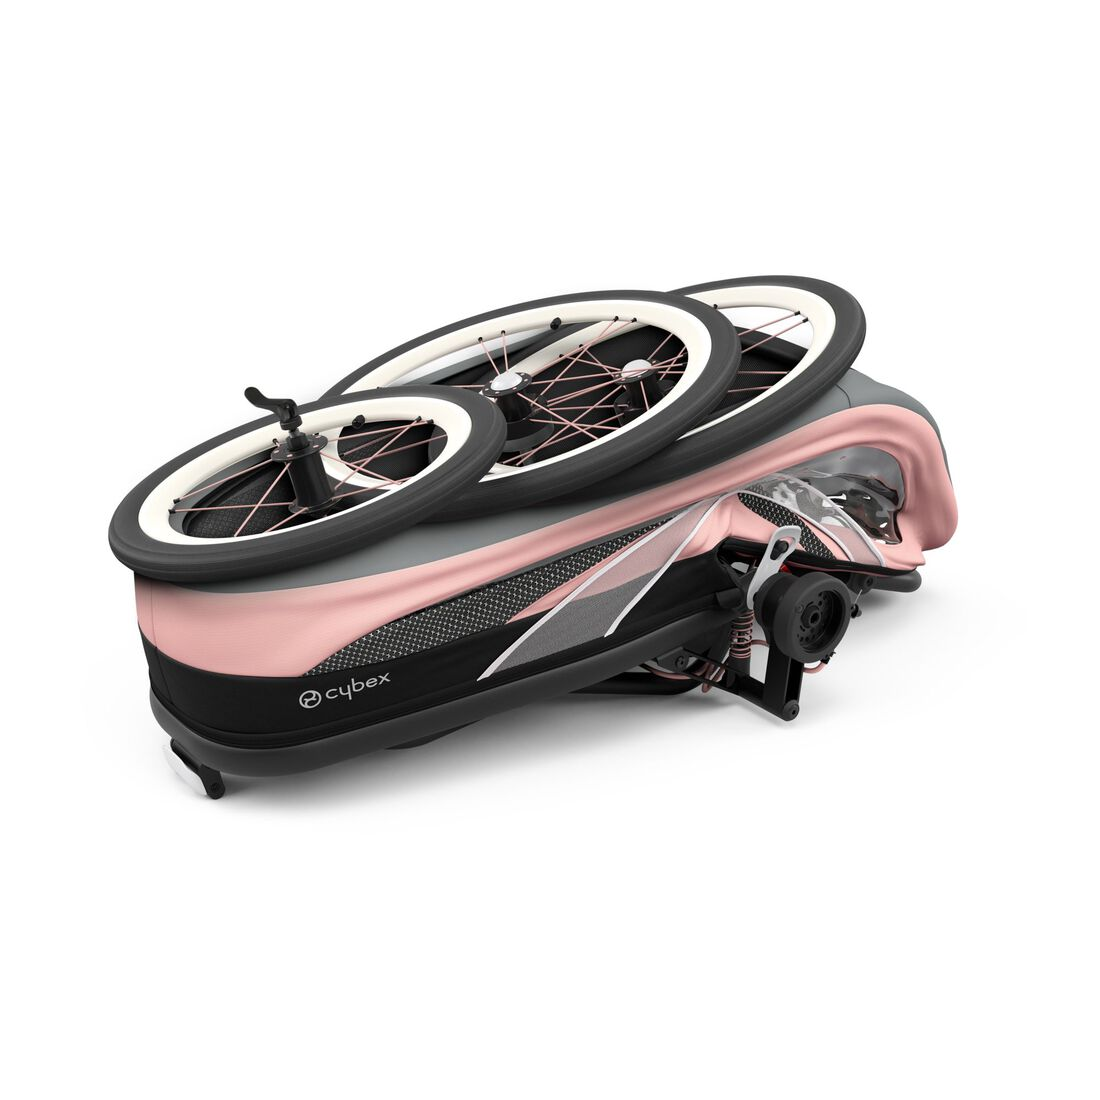 CYBEX Zeno Frame - Black With Pink Details in Black With Pink Details large image number 6